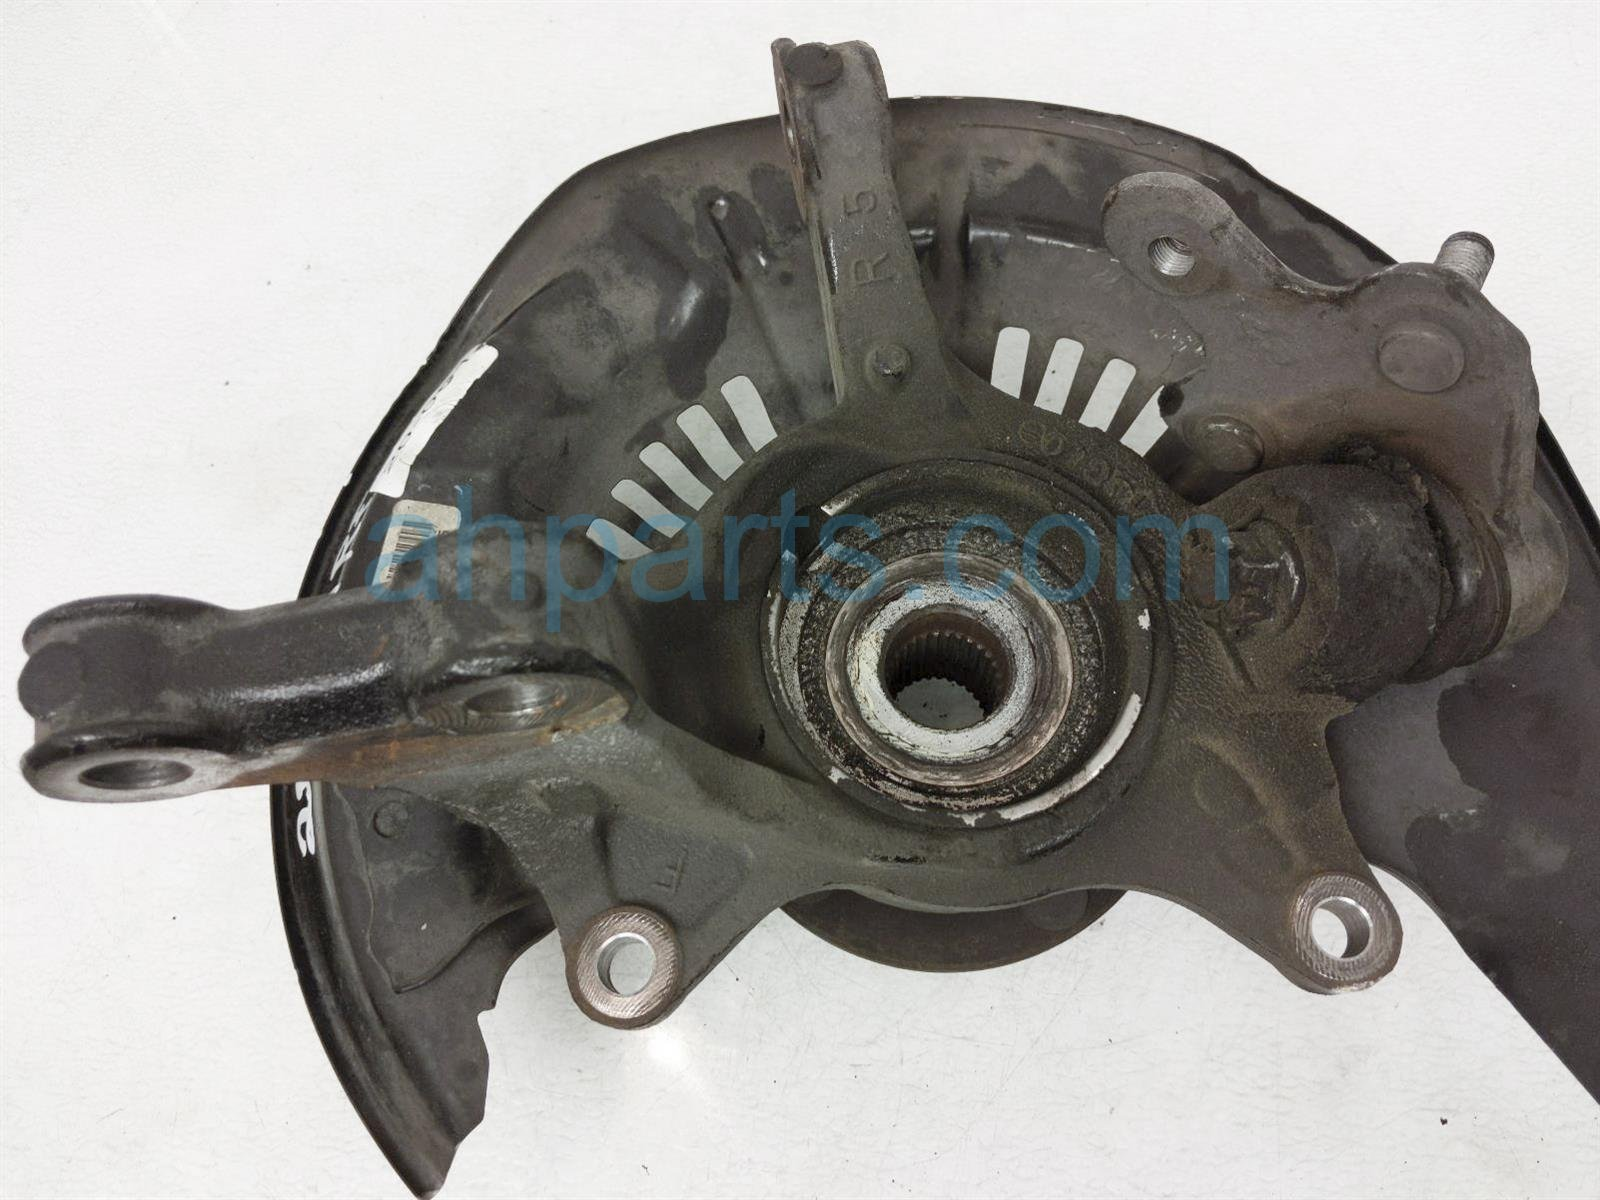 2014 Toyota Highlander Front Passenger Spindle Knuckle Hub 43211 0E010 Replacement